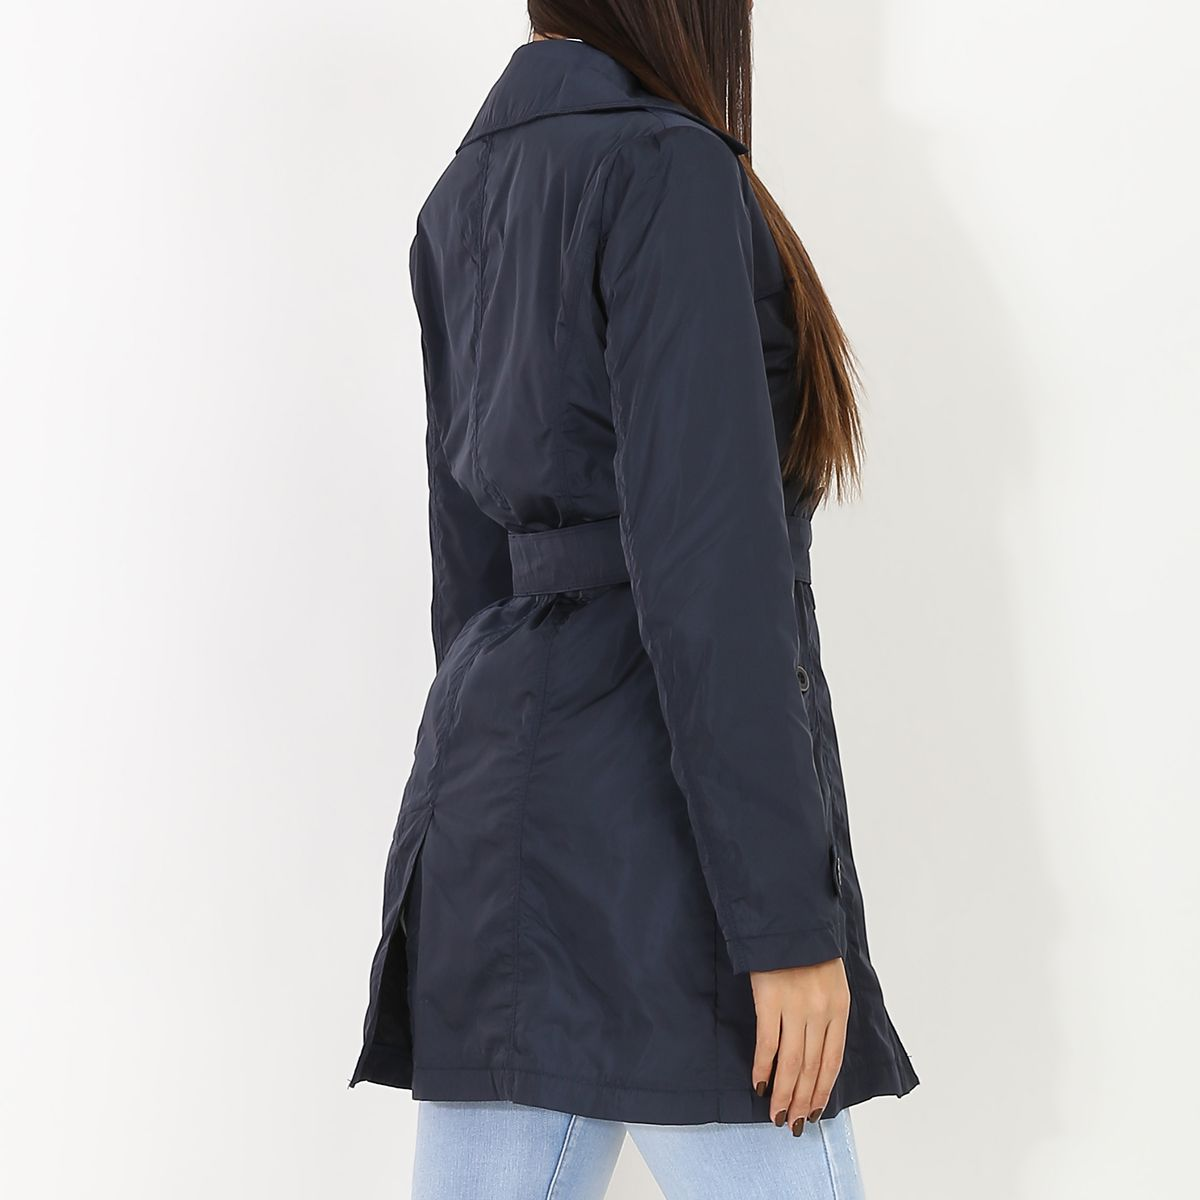 Trench mi-long bleu marine imperméable